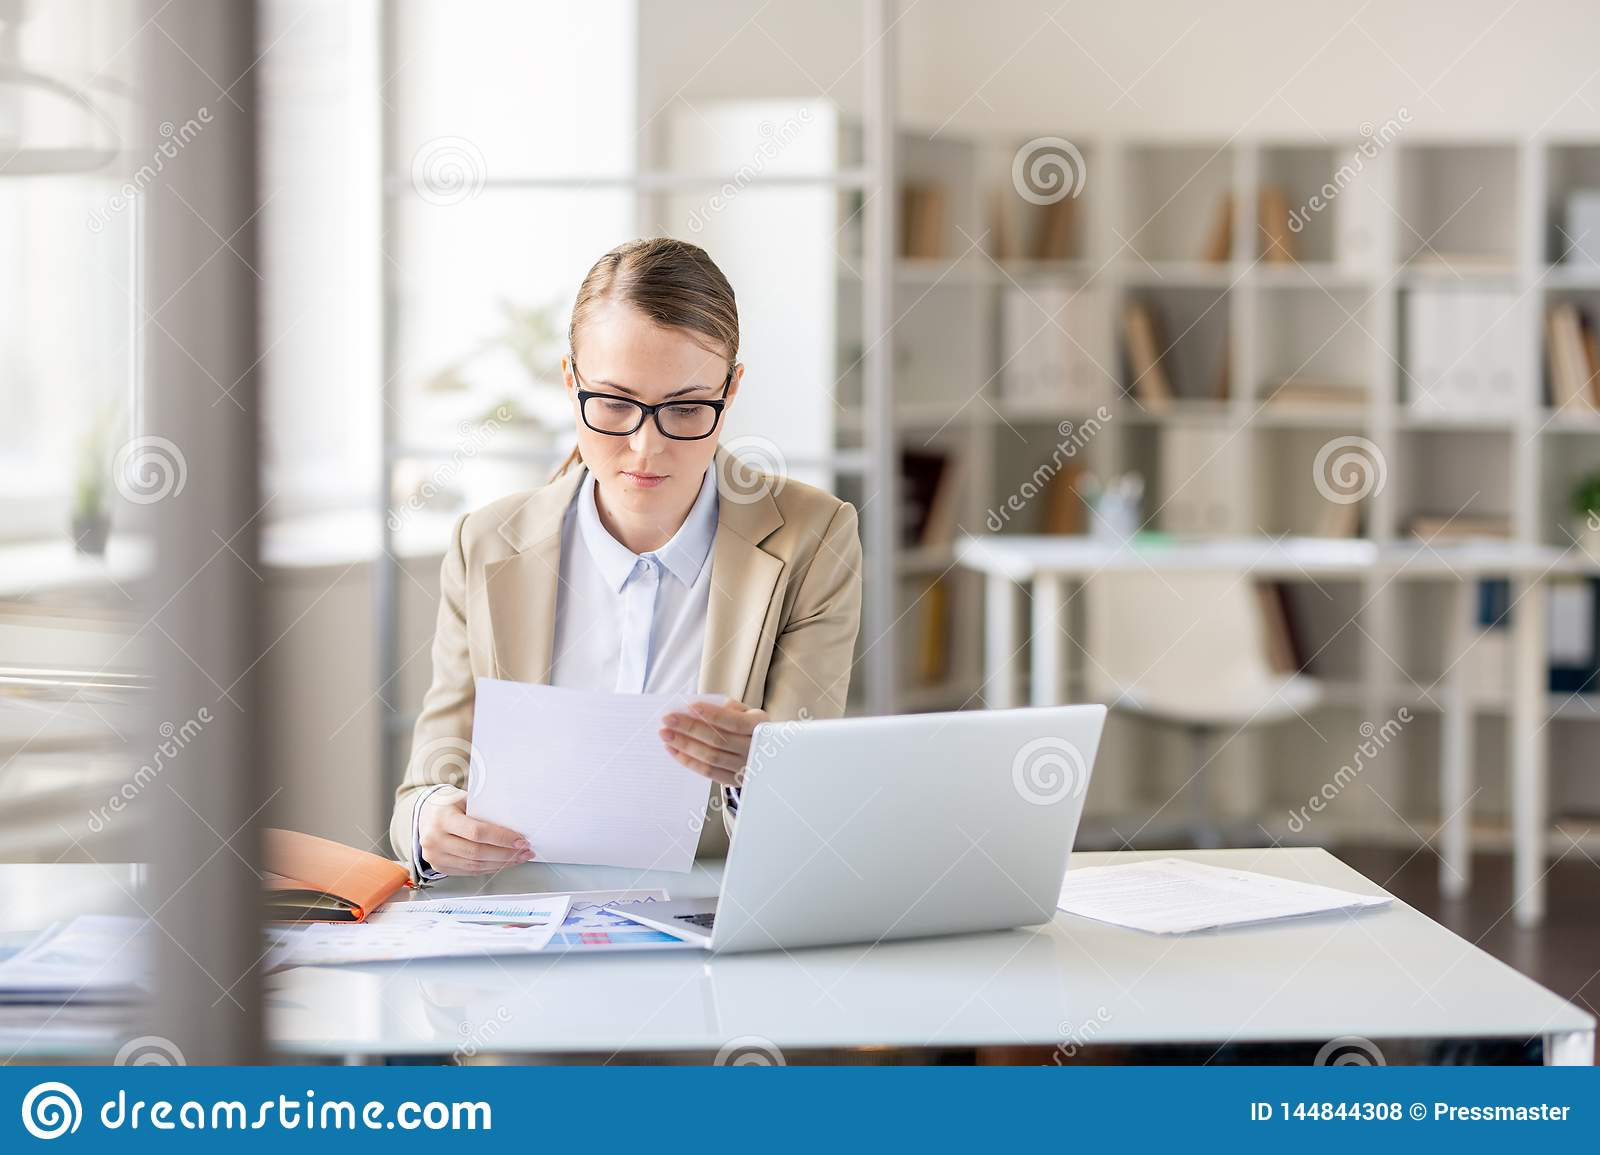 Lady concentrated on report